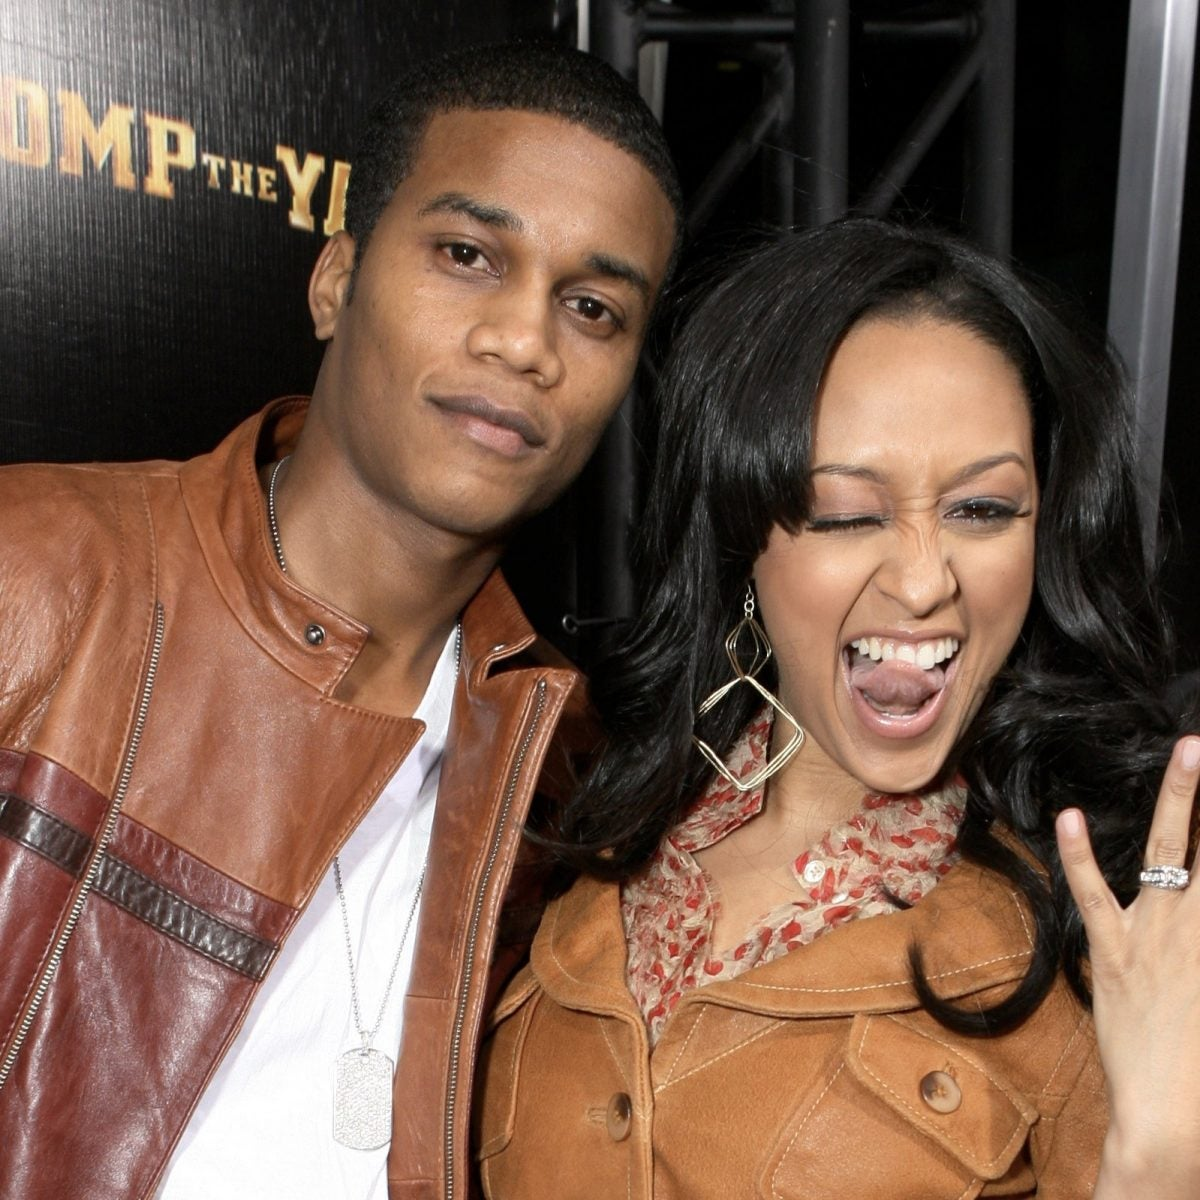 Then and Now: Tia Mowry and Husband Cory Hardrict's Love Through The Years